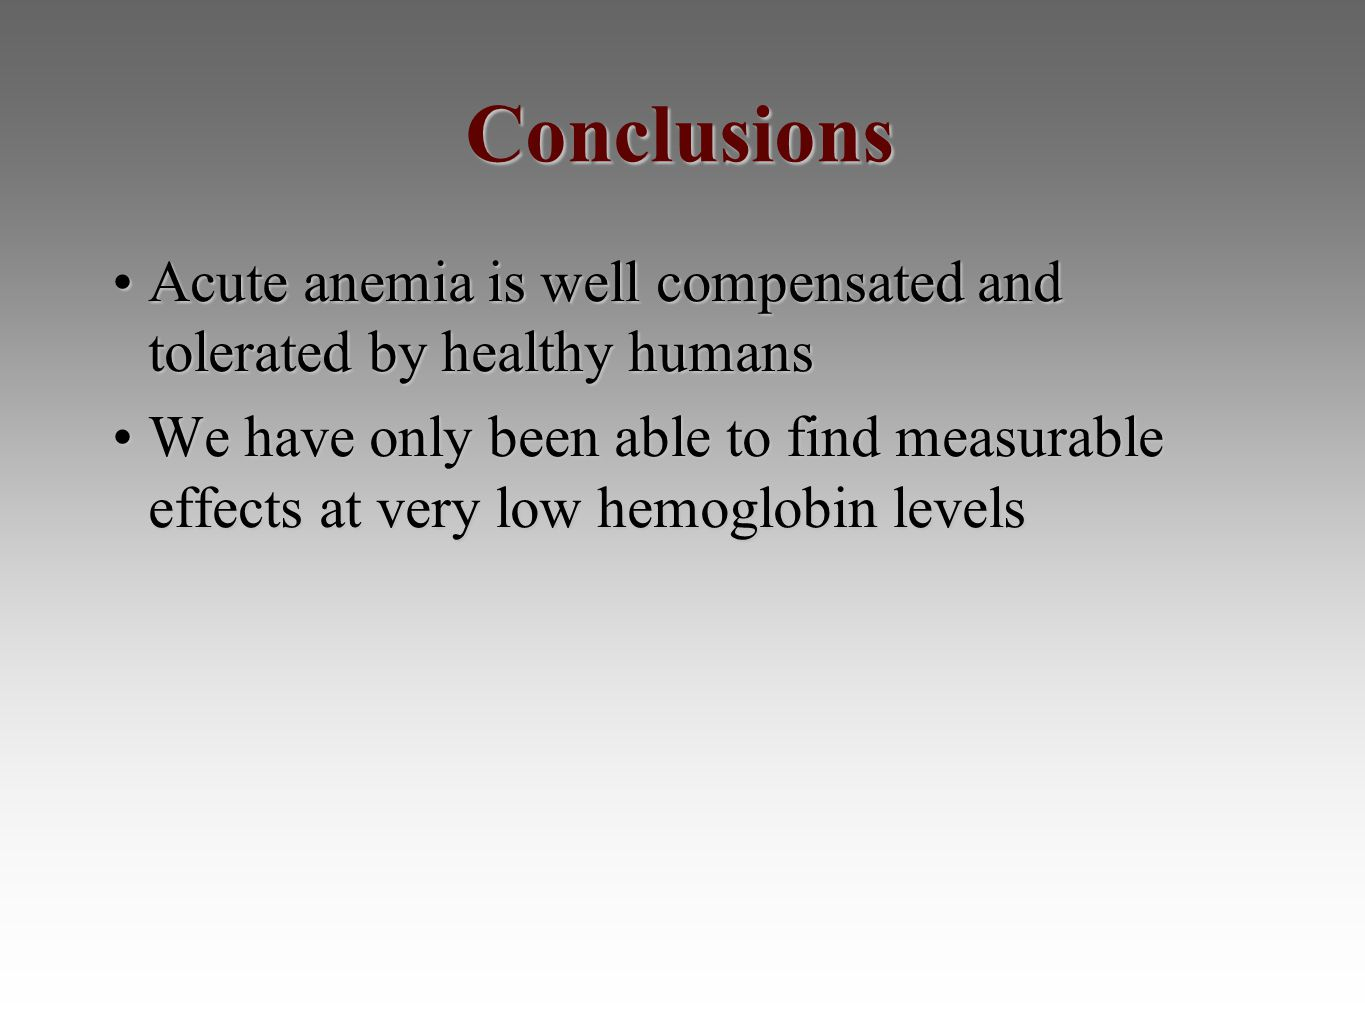 Conclusions Acute anemia is well compensated and tolerated by healthy humansAcute anemia is well compensated and tolerated by healthy humans We have only been able to find measurable effects at very low hemoglobin levelsWe have only been able to find measurable effects at very low hemoglobin levels